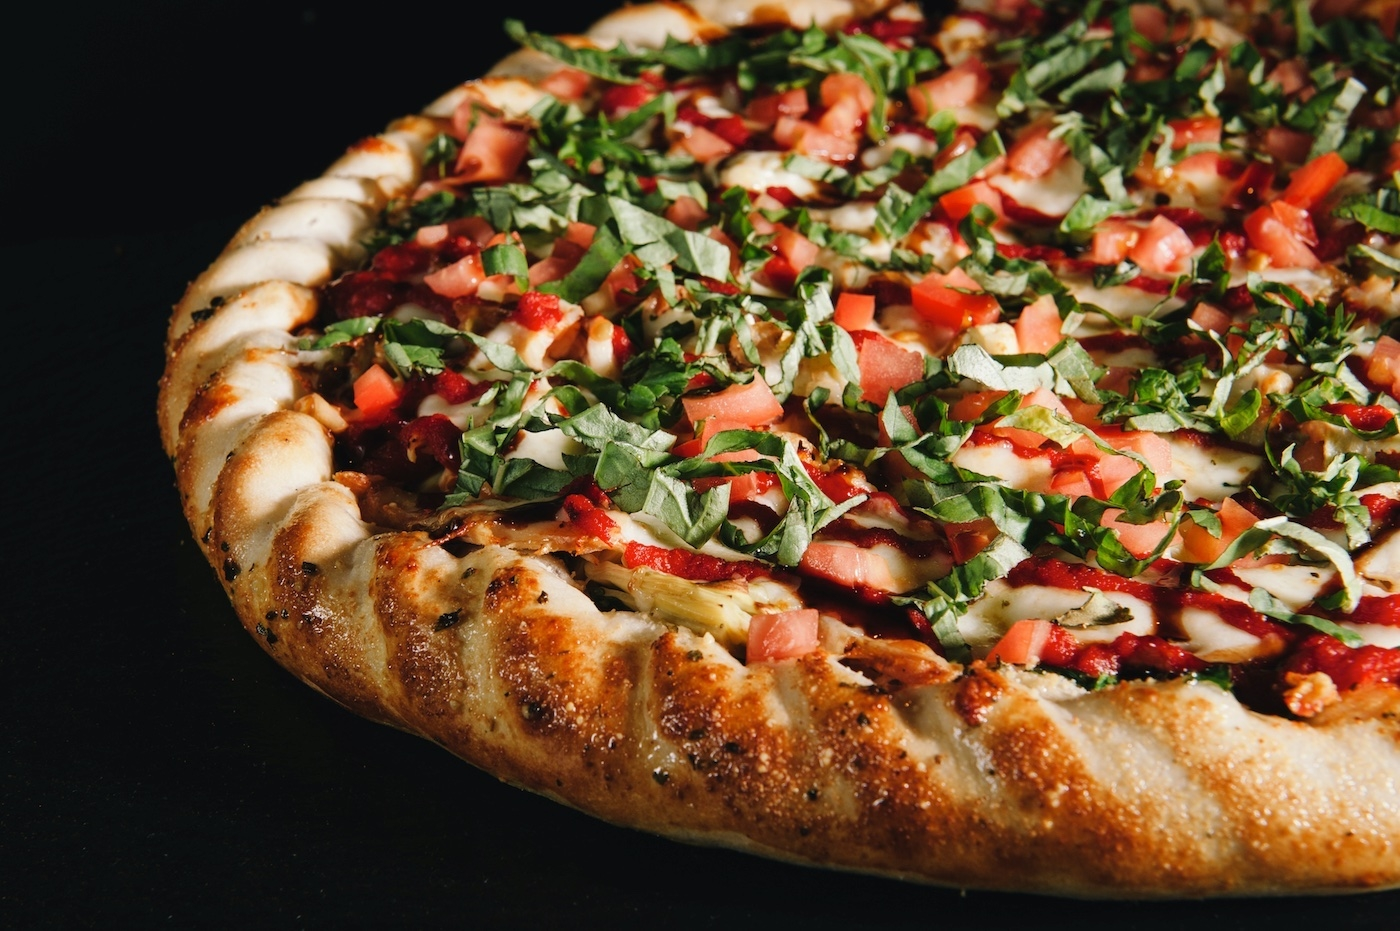 Pyro's Fire Fresh Pizza serves the only customizable gourmet pizza in four minutes.